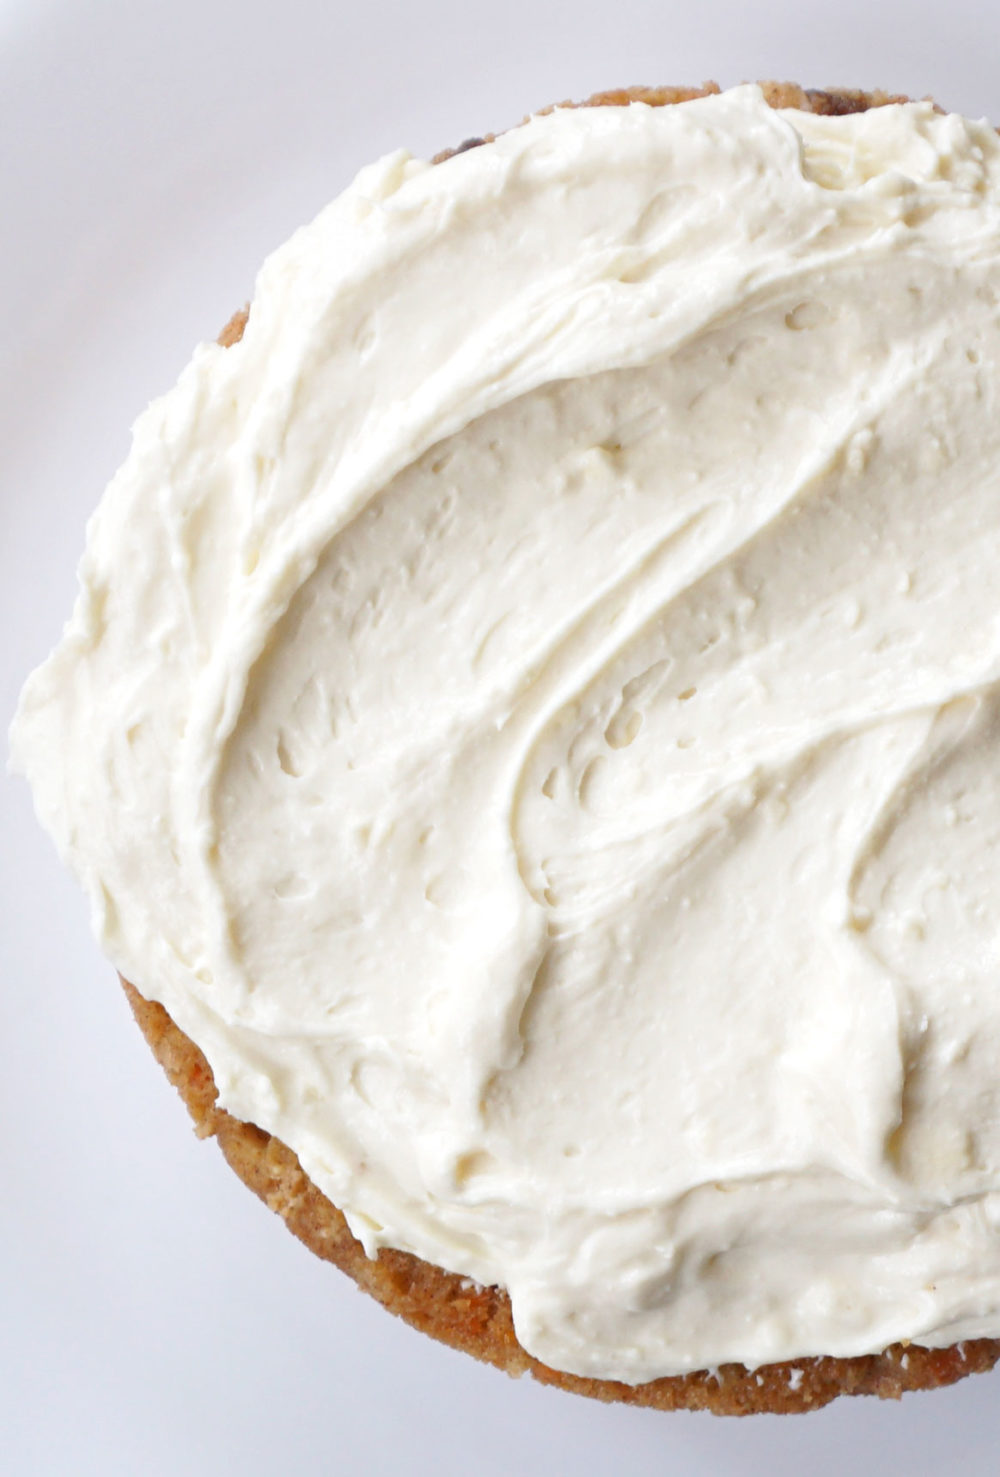 Cream cheese frosting (sugar free, keto, low carb)